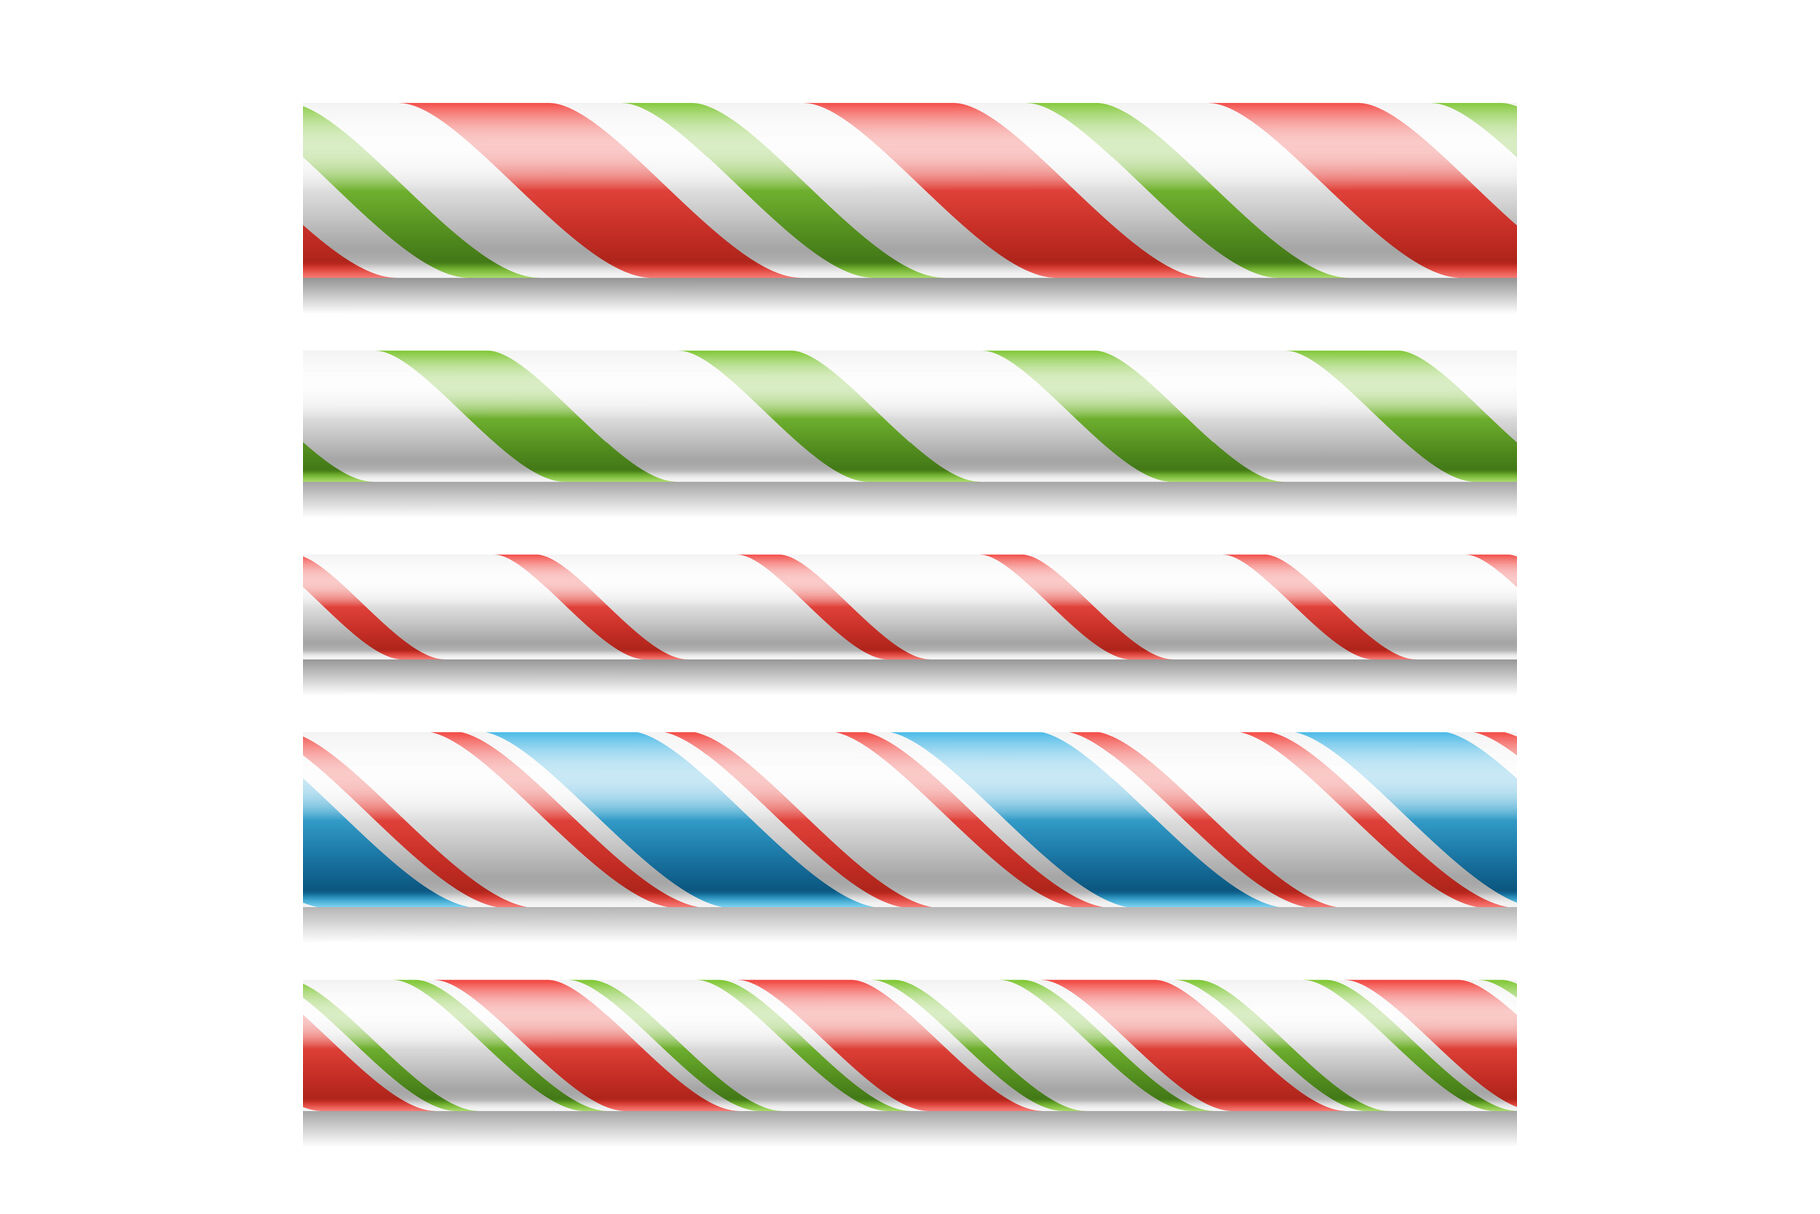 Xmas Candy Cane Vector Horizontal Seamless Pattern Isolated On